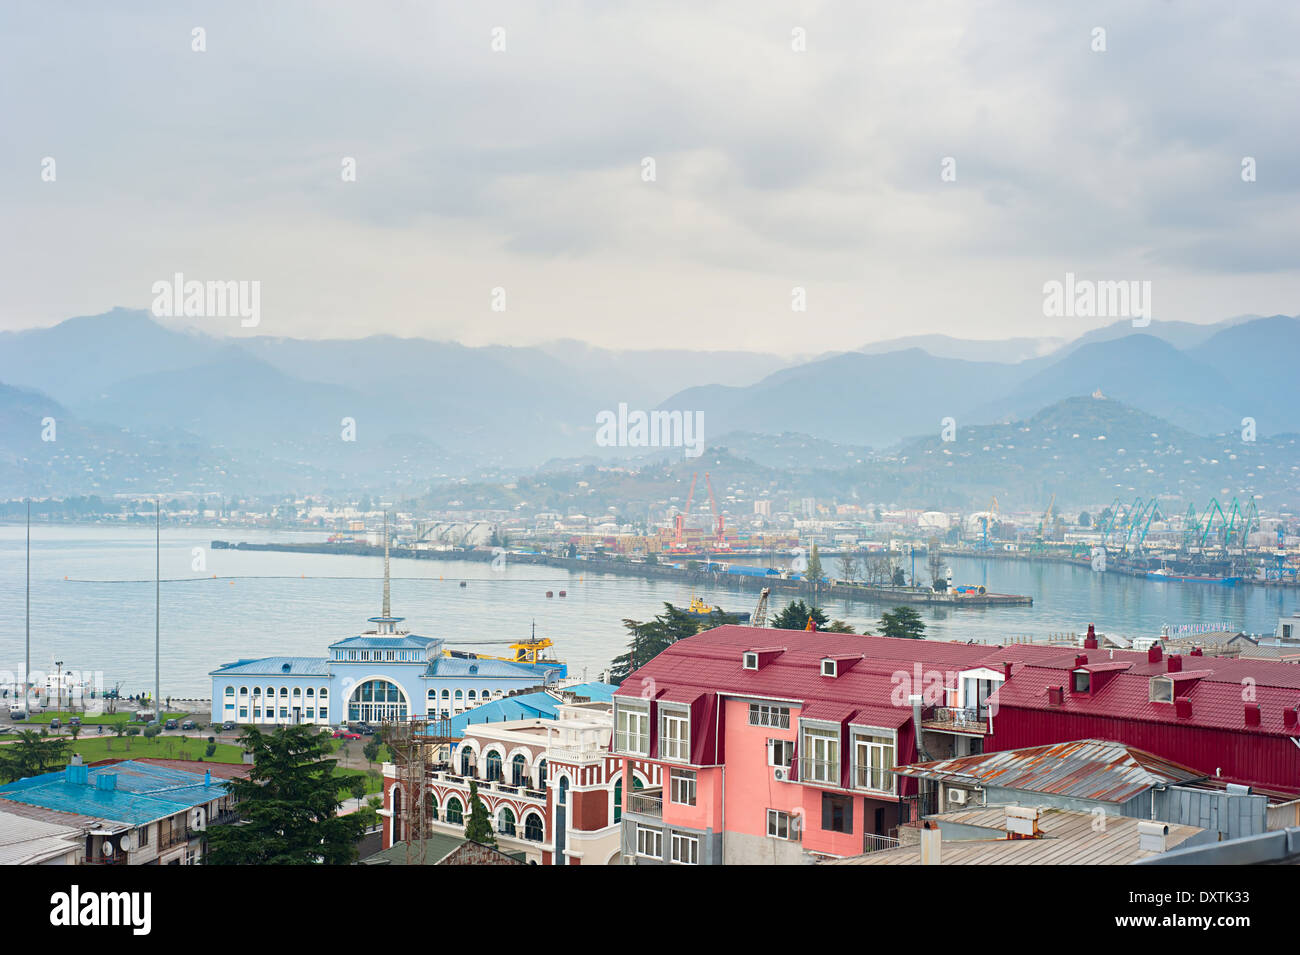 Aerial view of Batumi port , Georgia with mountains on background - Stock Image